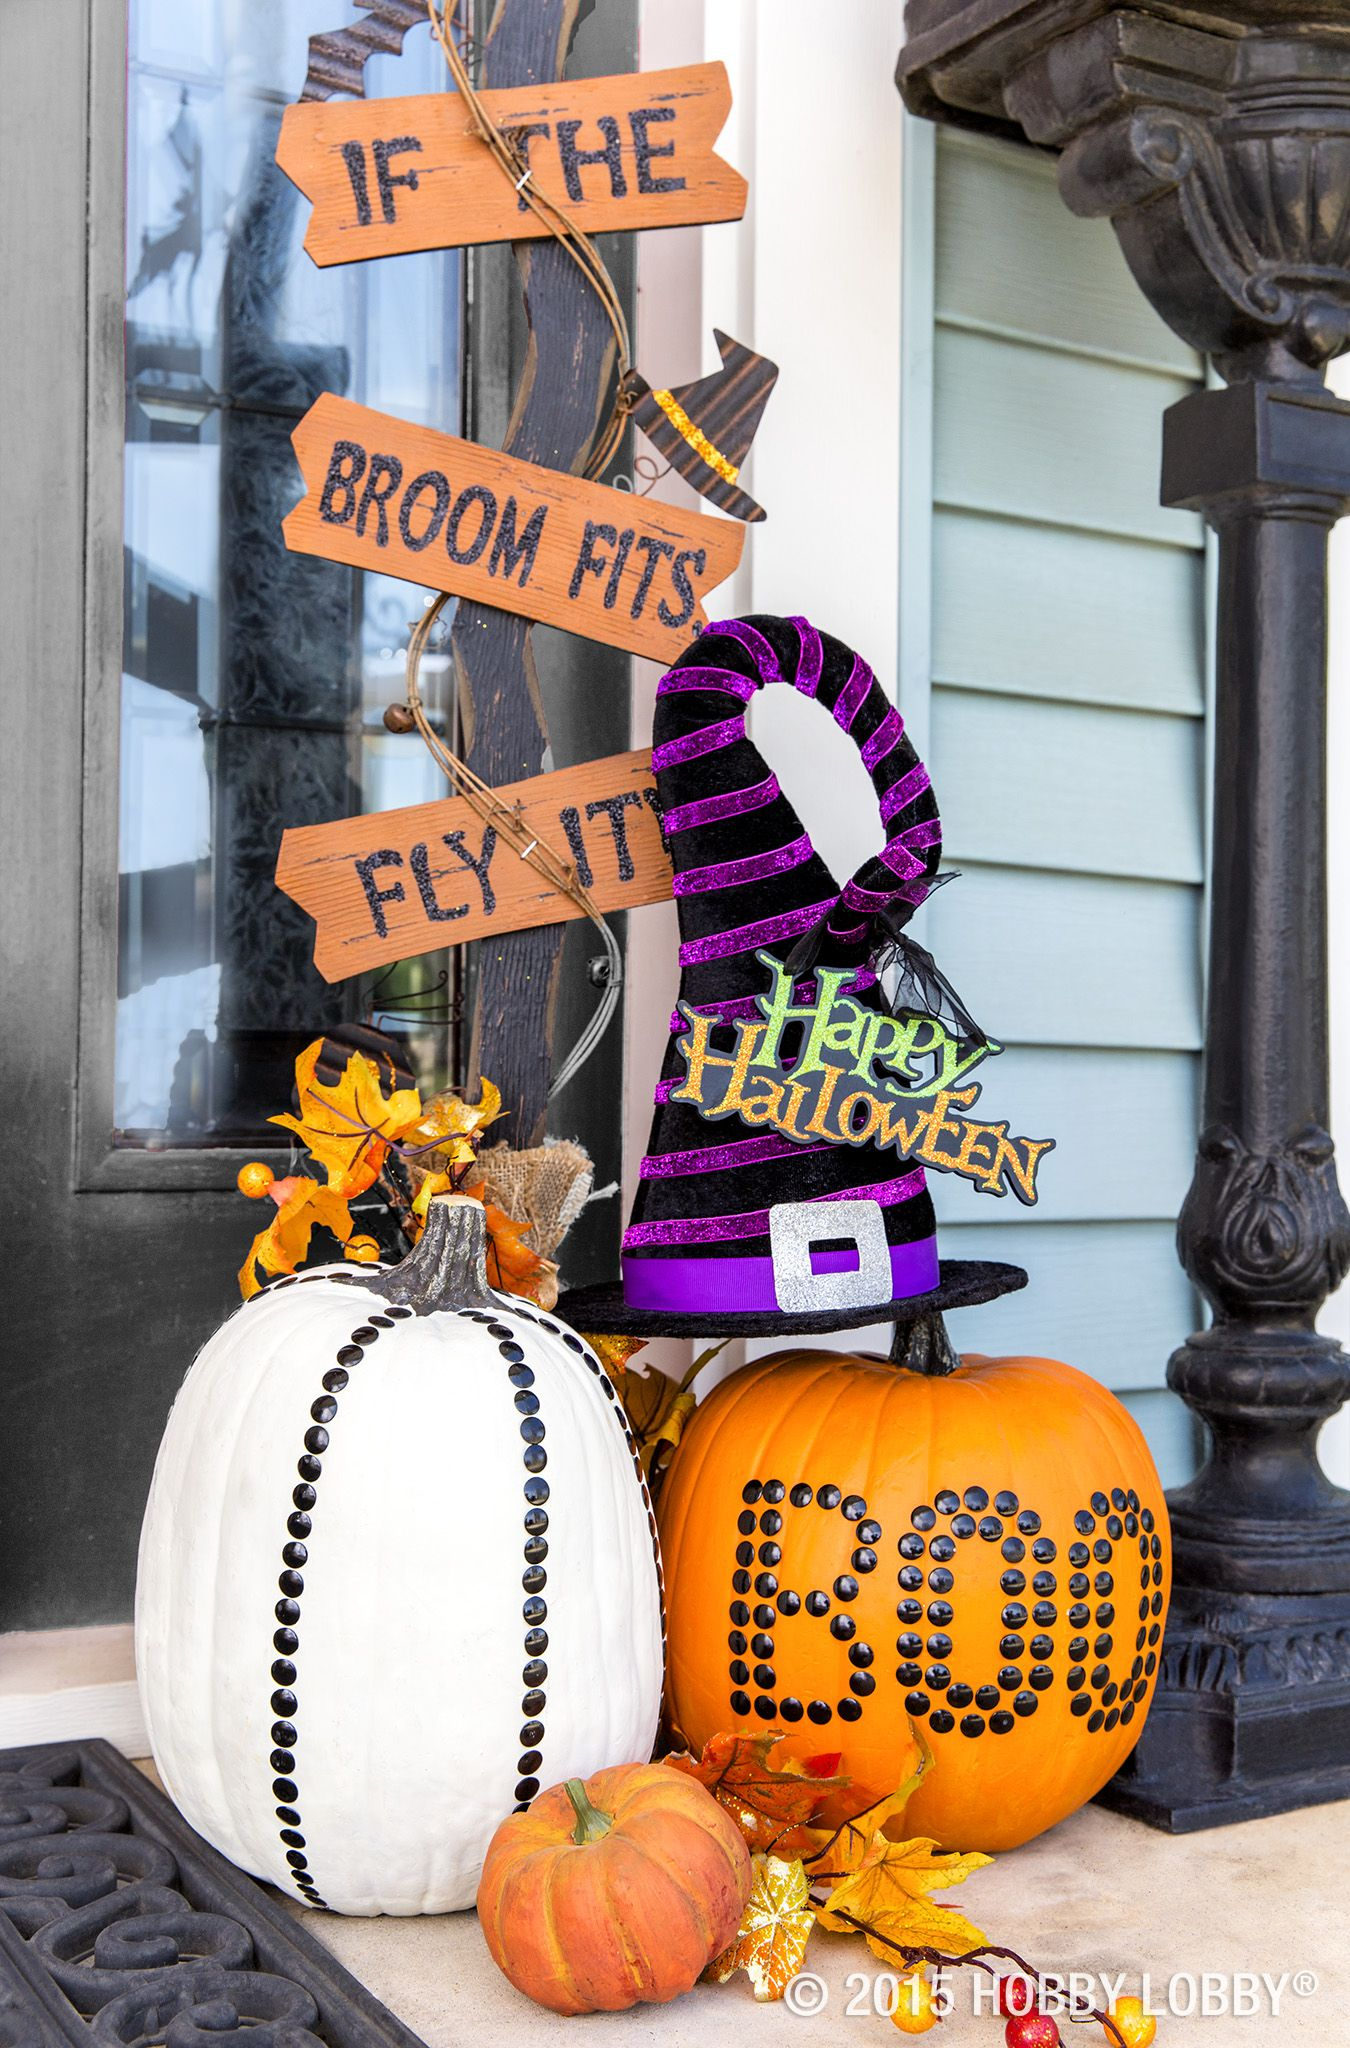 Give your Halloween decor a face-lift with spooky signs, studded